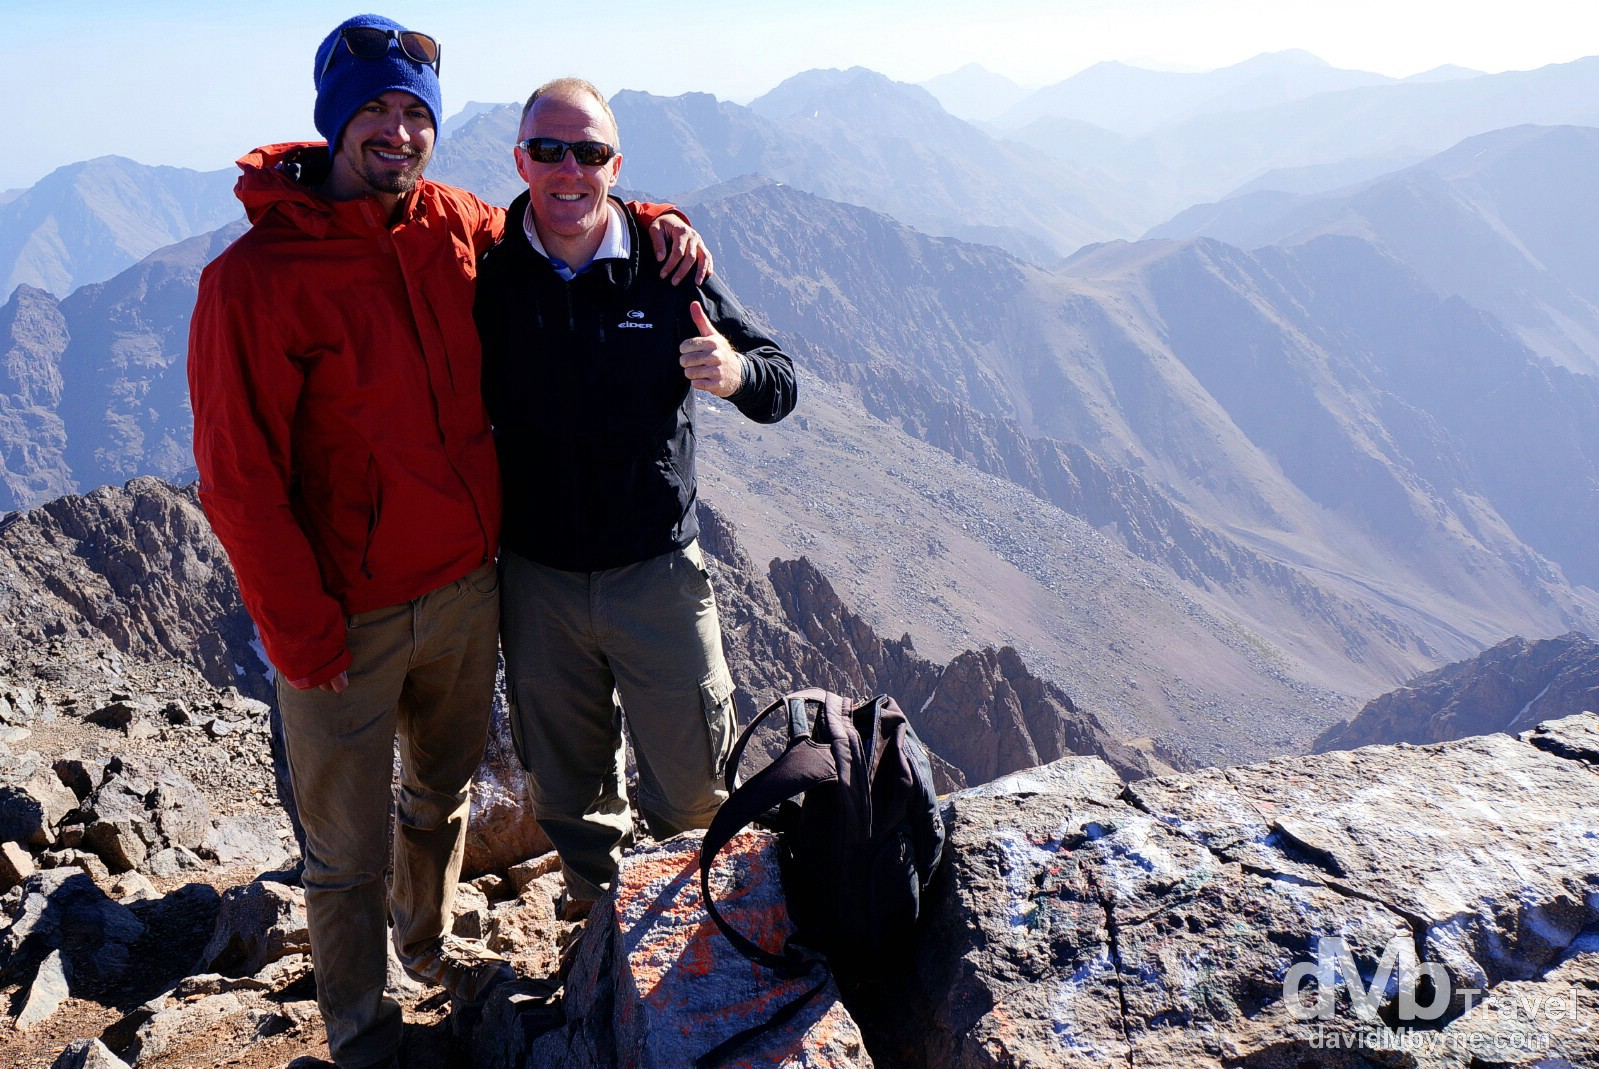 On the 4,176-metre summit of Jebel Toubkal, the highest point in Northern Africa. Jebel Toubkal, High Atlas, central Morocco. May 12th, 2014.